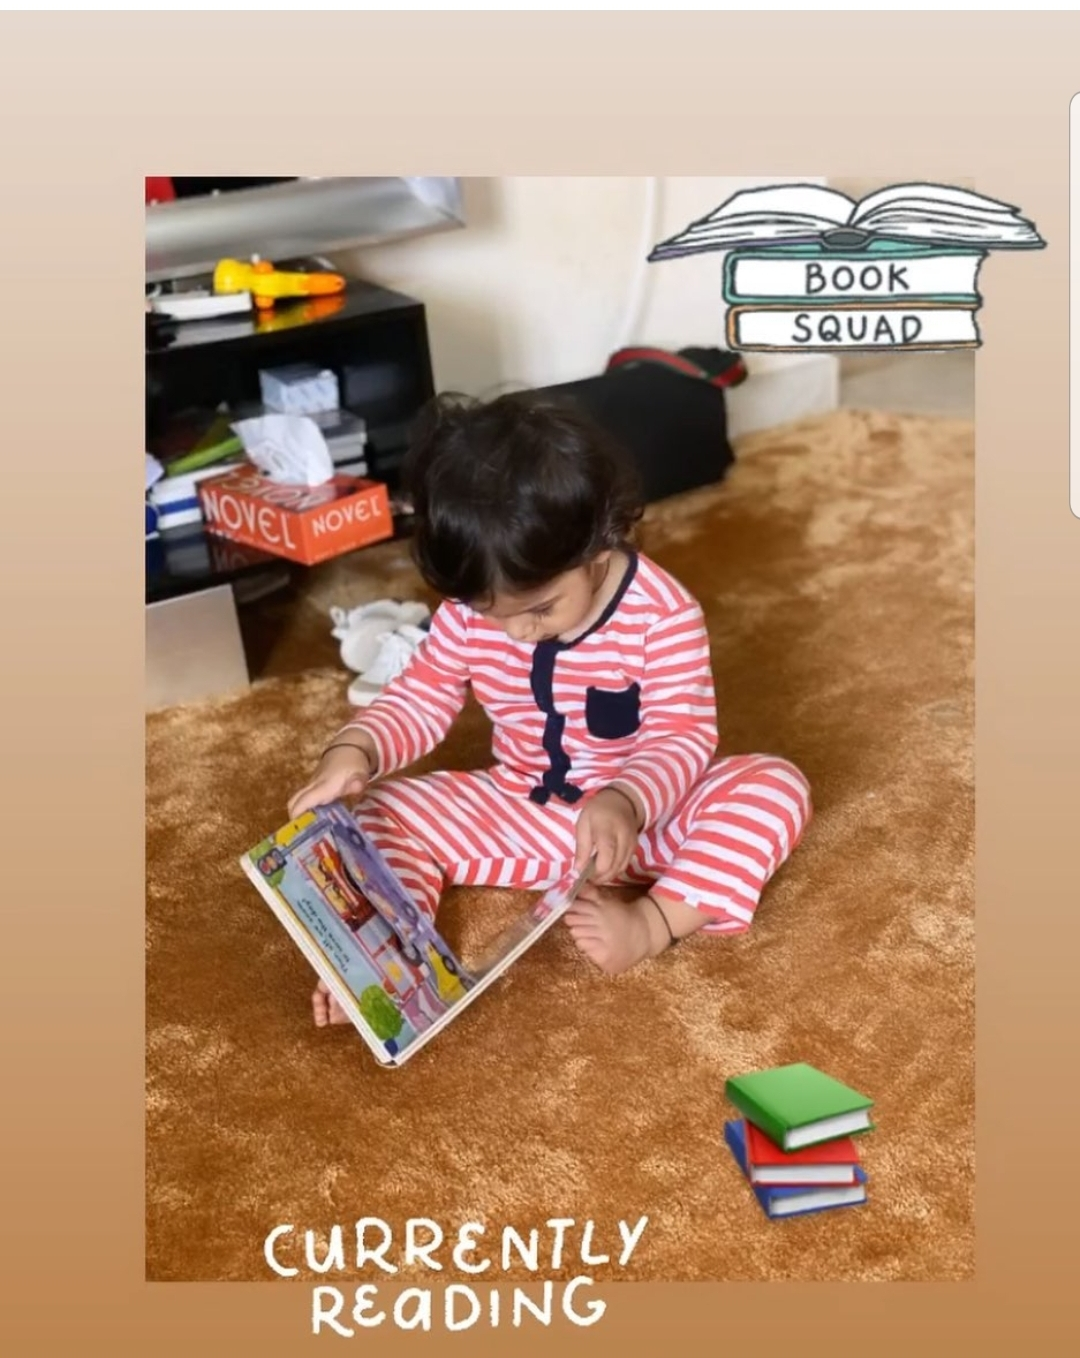 Sania Mirza Clicks Adorable Pictures of Son Izhaan with Shoaib Malik in Dubai